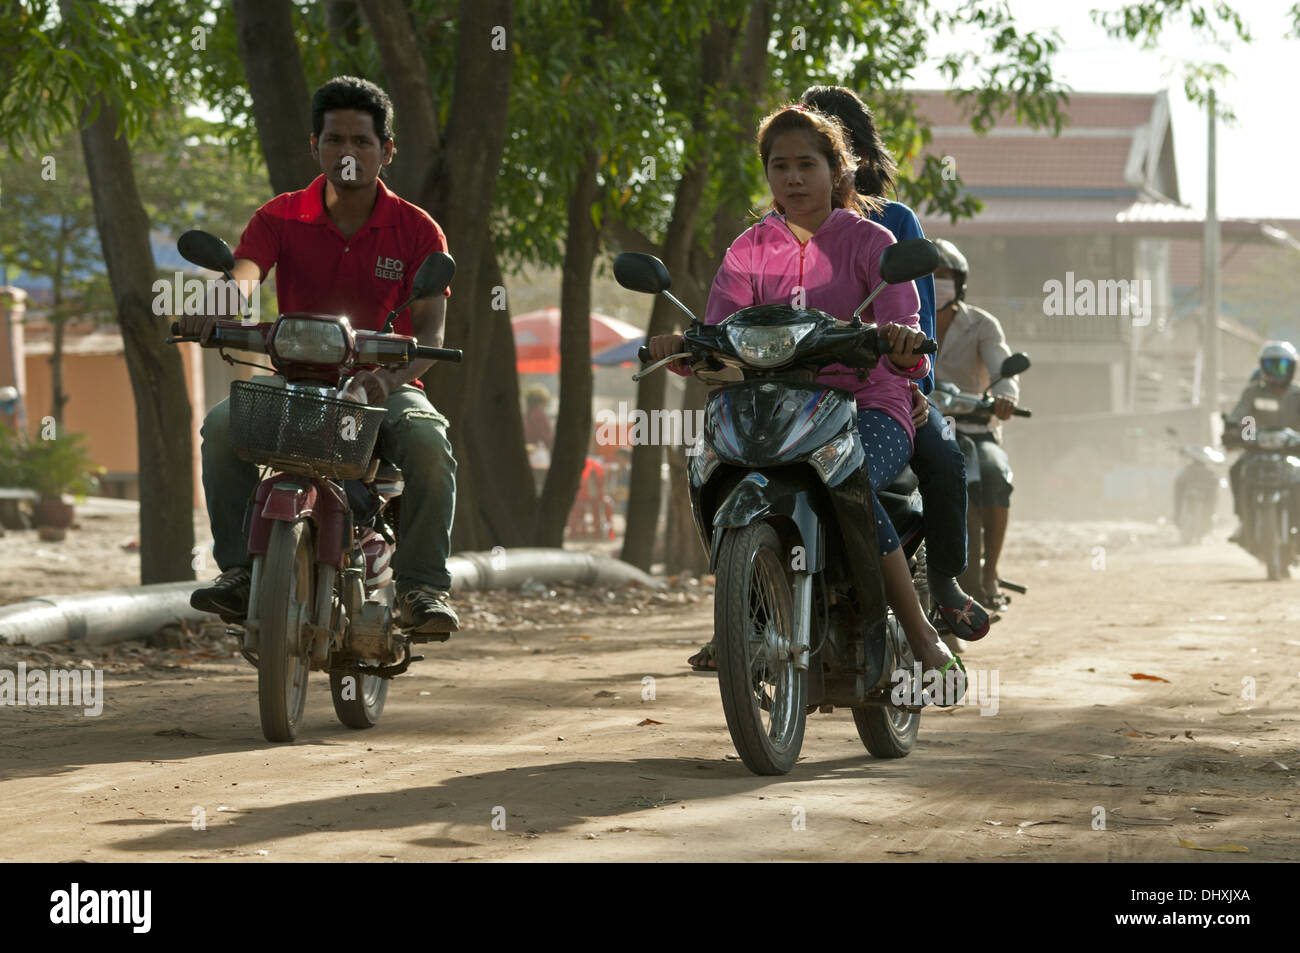 Young people riding motorbikes, Cambodia Stock Photo